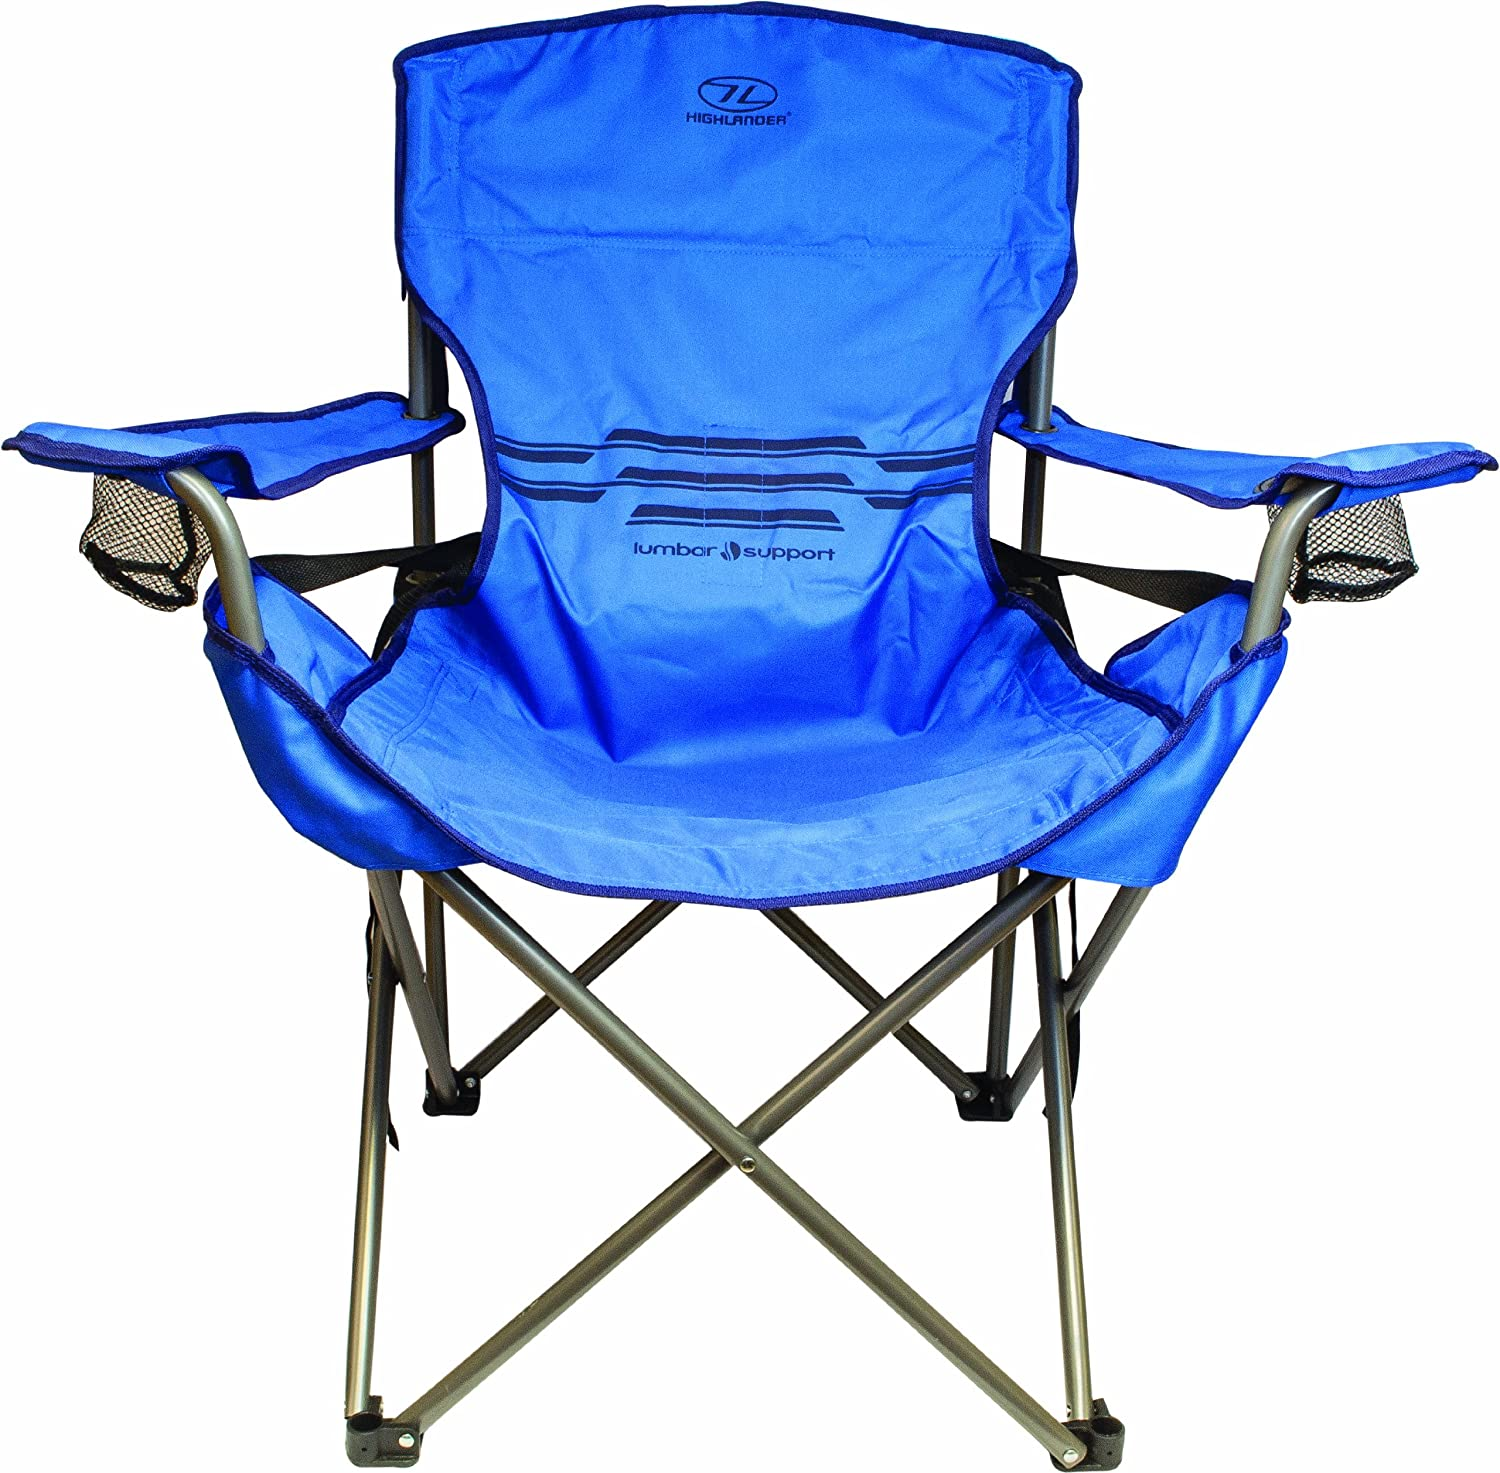 Highlander Lumbar Support Camp Chair Blue Amazon Sports